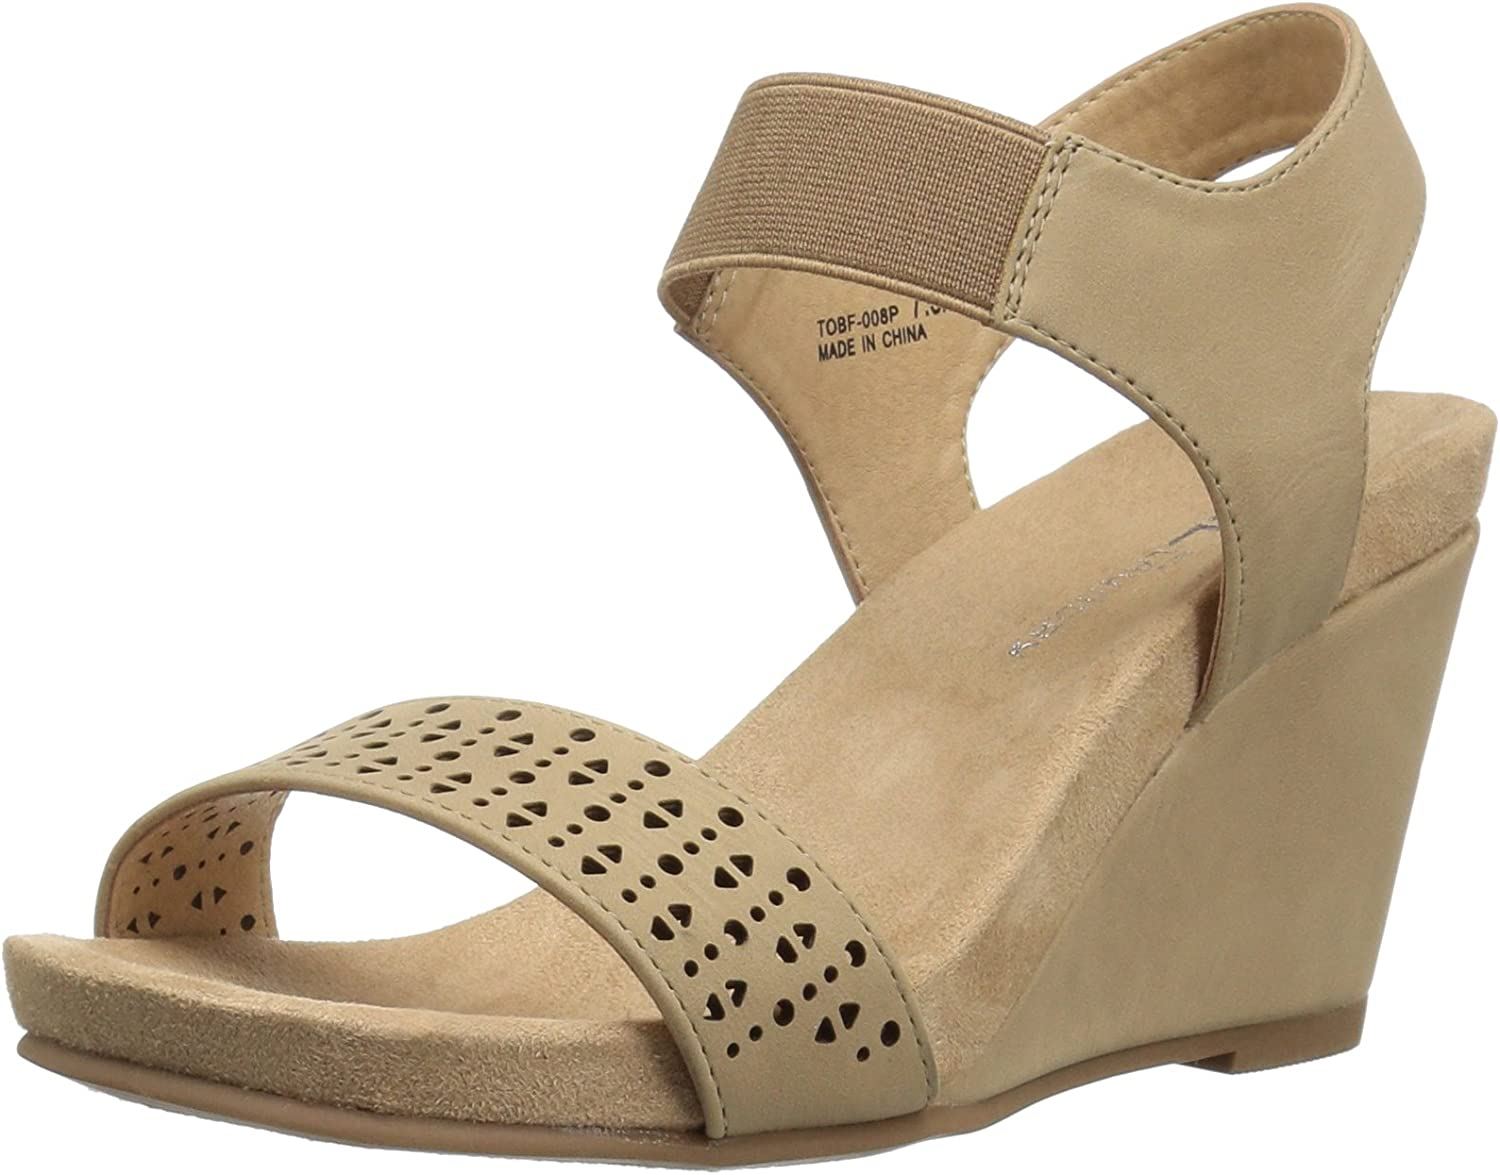 CL by Chinese Laundry Women's Tatum Wedge Sandal